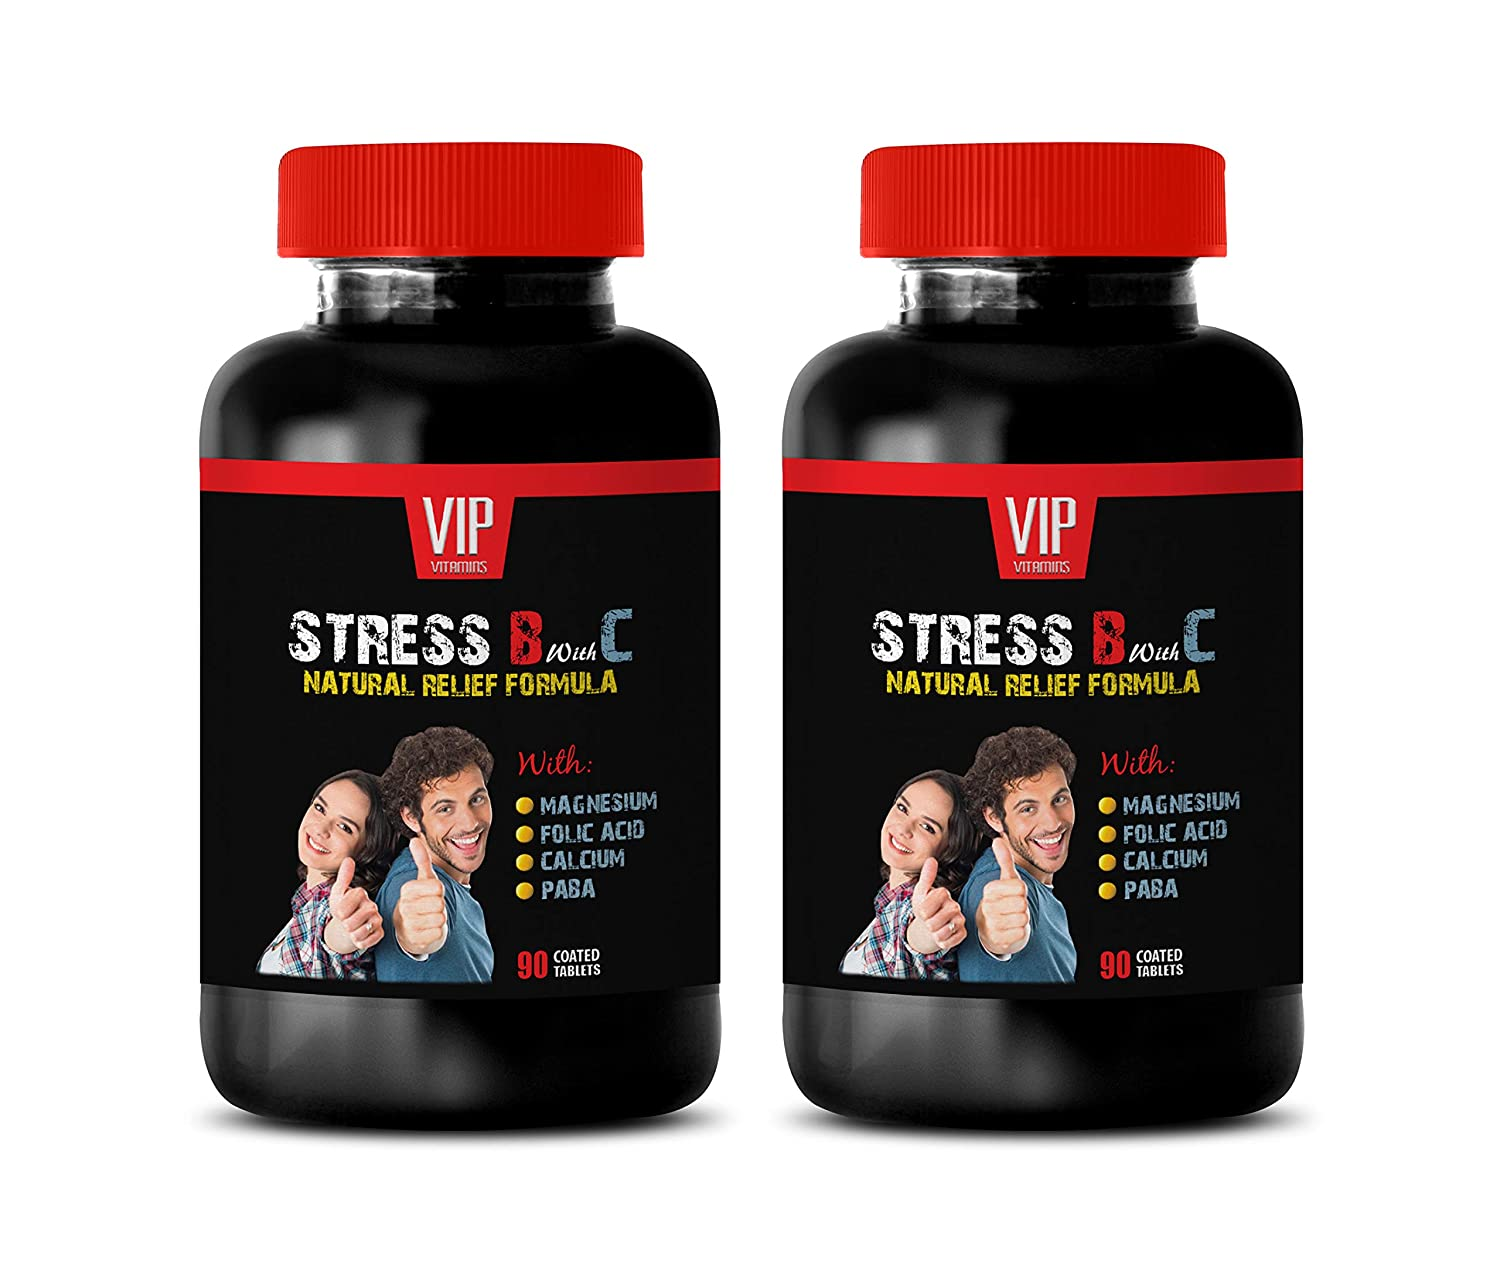 Stress Vitamin b Complex - Stress B with C Natural Relief Formula for Adults - Mood Support - Anxiety Relief - Valerian Capsules - 2 Bottles (180 Tabs)